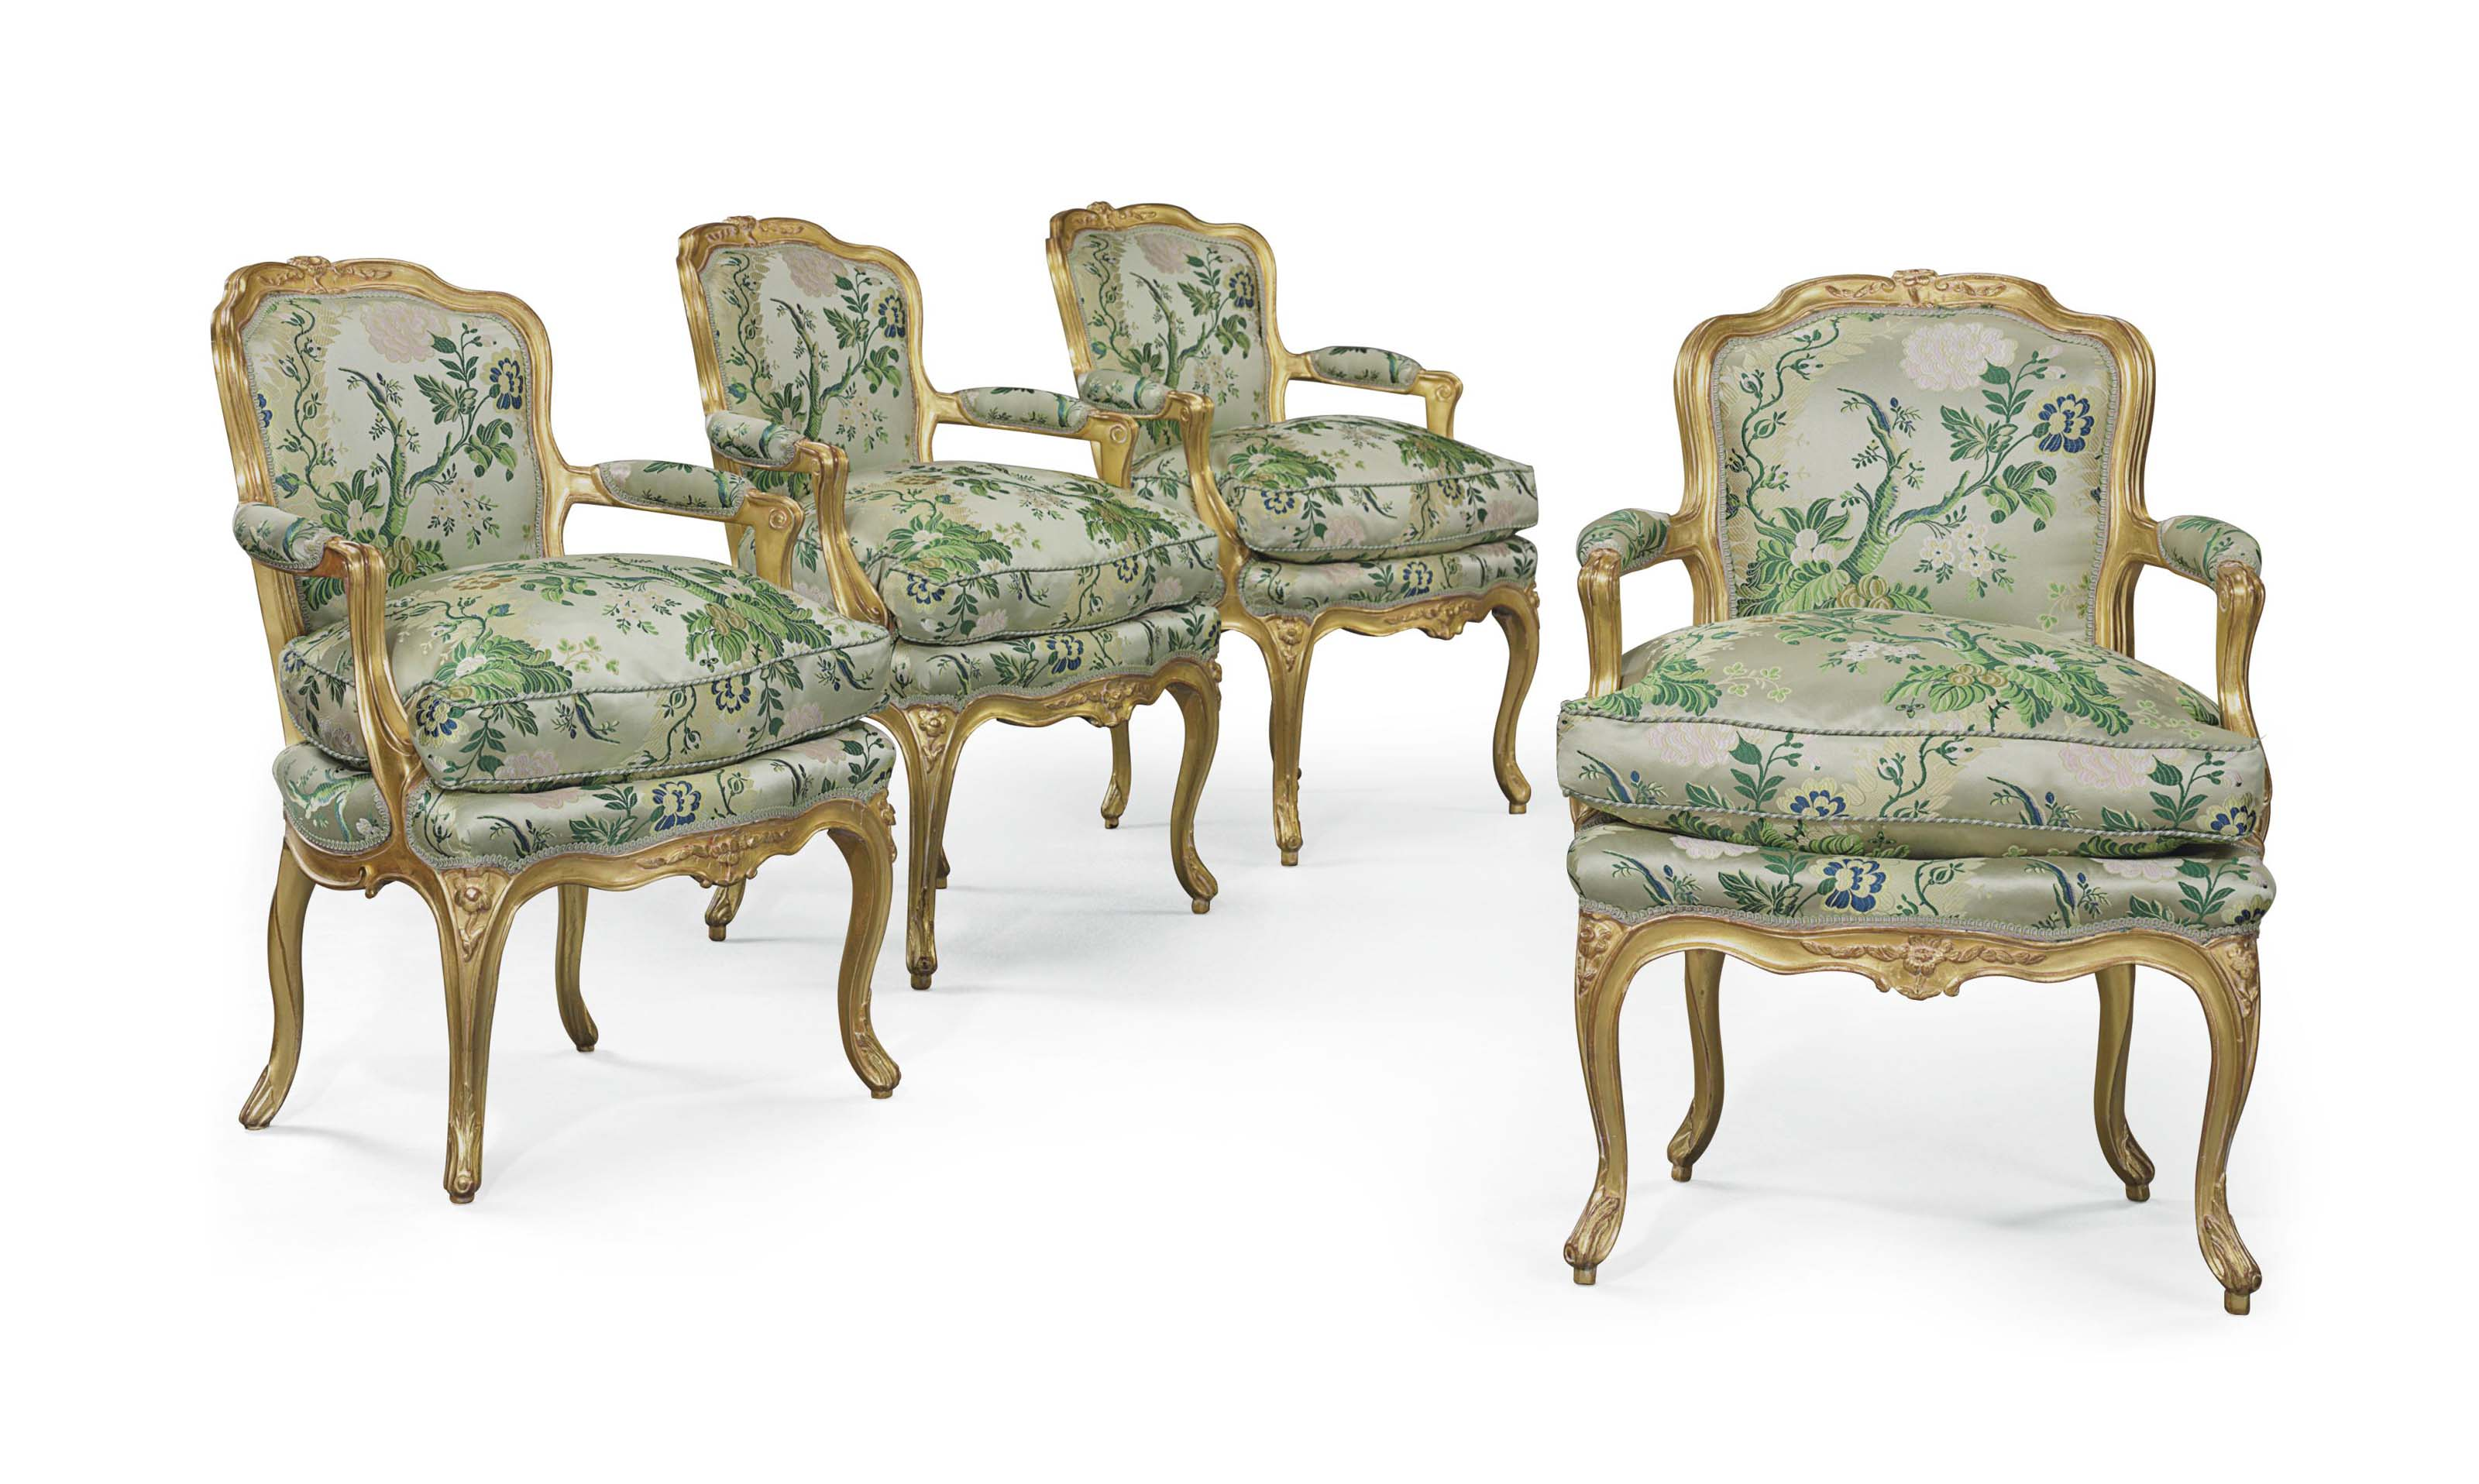 4 Fauteuils Louis Xv A Set Of Four Louis Xv Giltwood Fauteuils Circa 1750